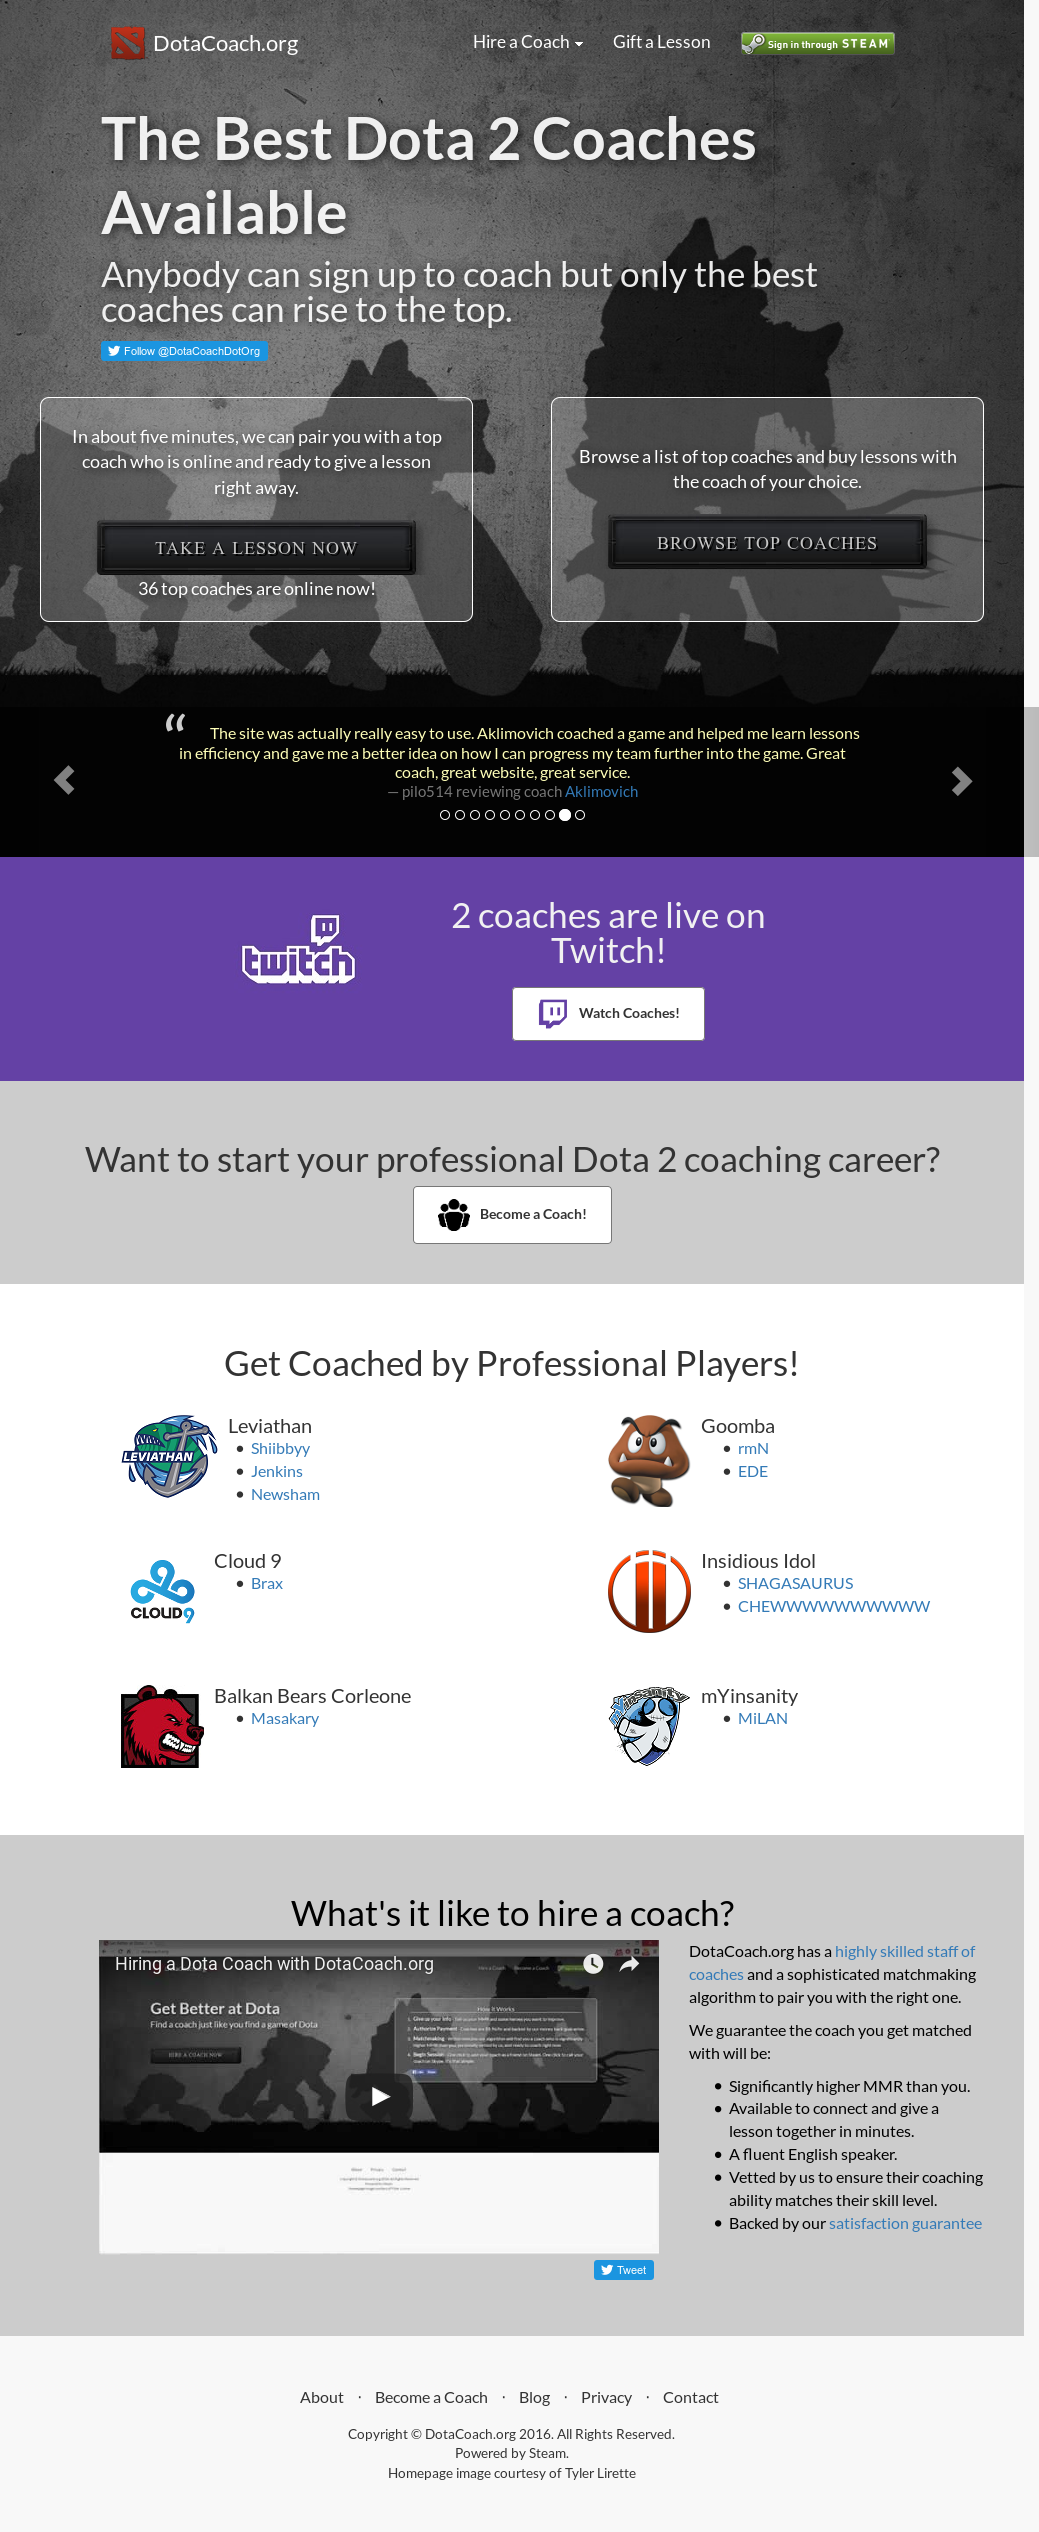 Dotacoach org Competitors, Revenue and Employees - Owler